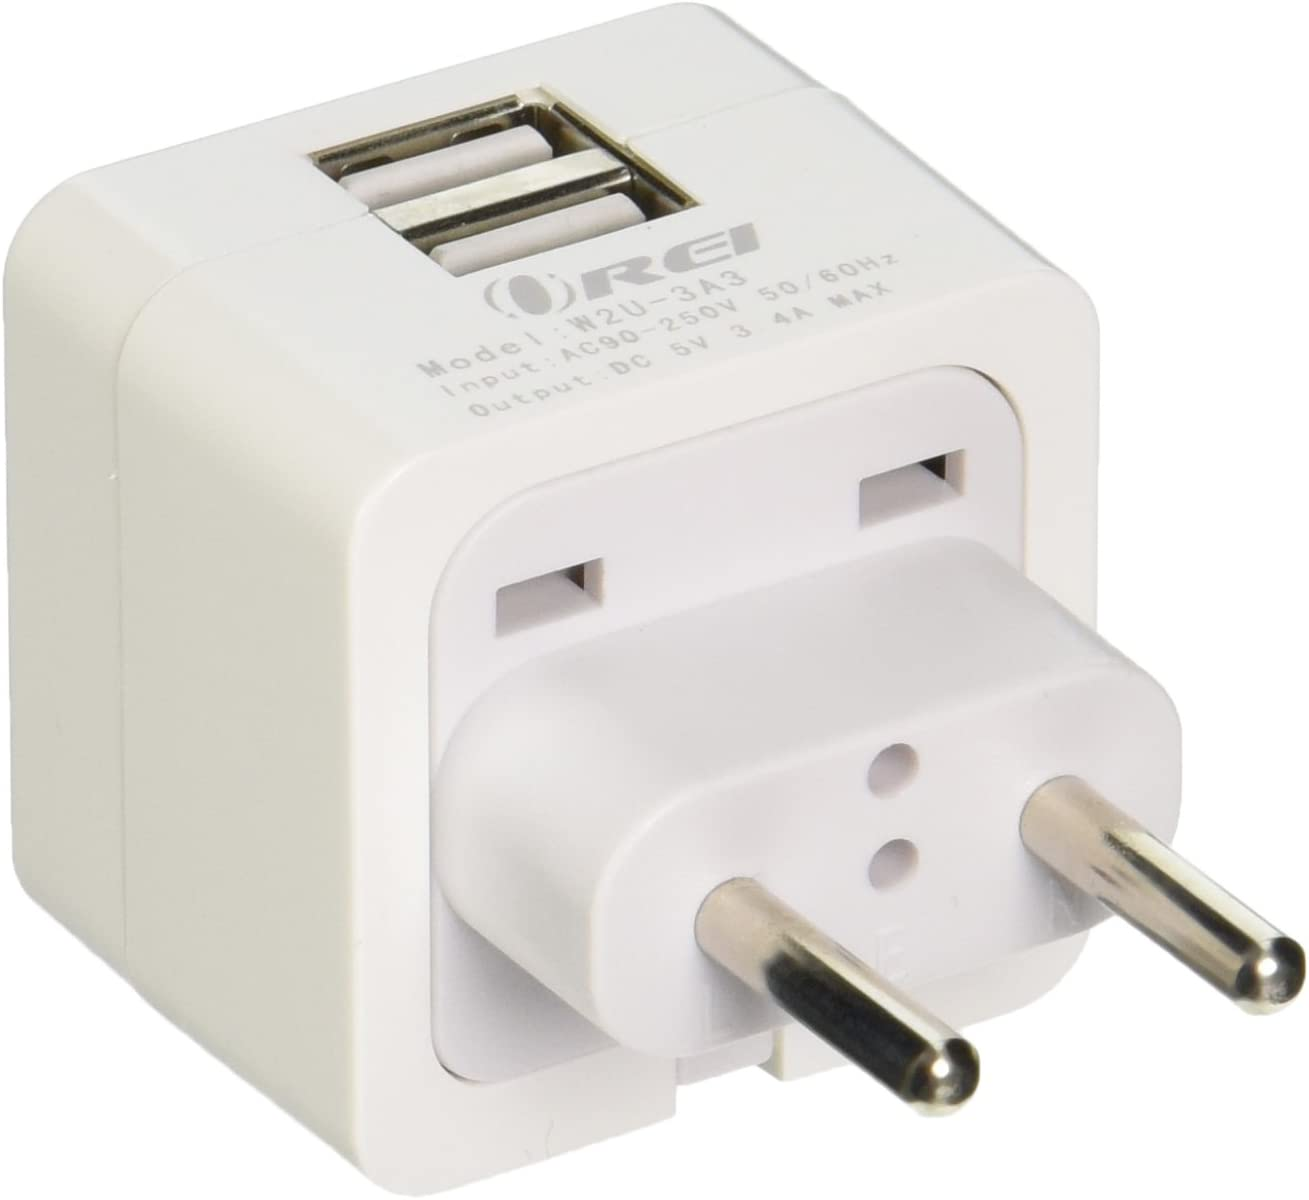 OREI 3.4A 2 USB Plug Adapter Type C for Europe - Compatible with iPhone/iPad, Galaxy & More